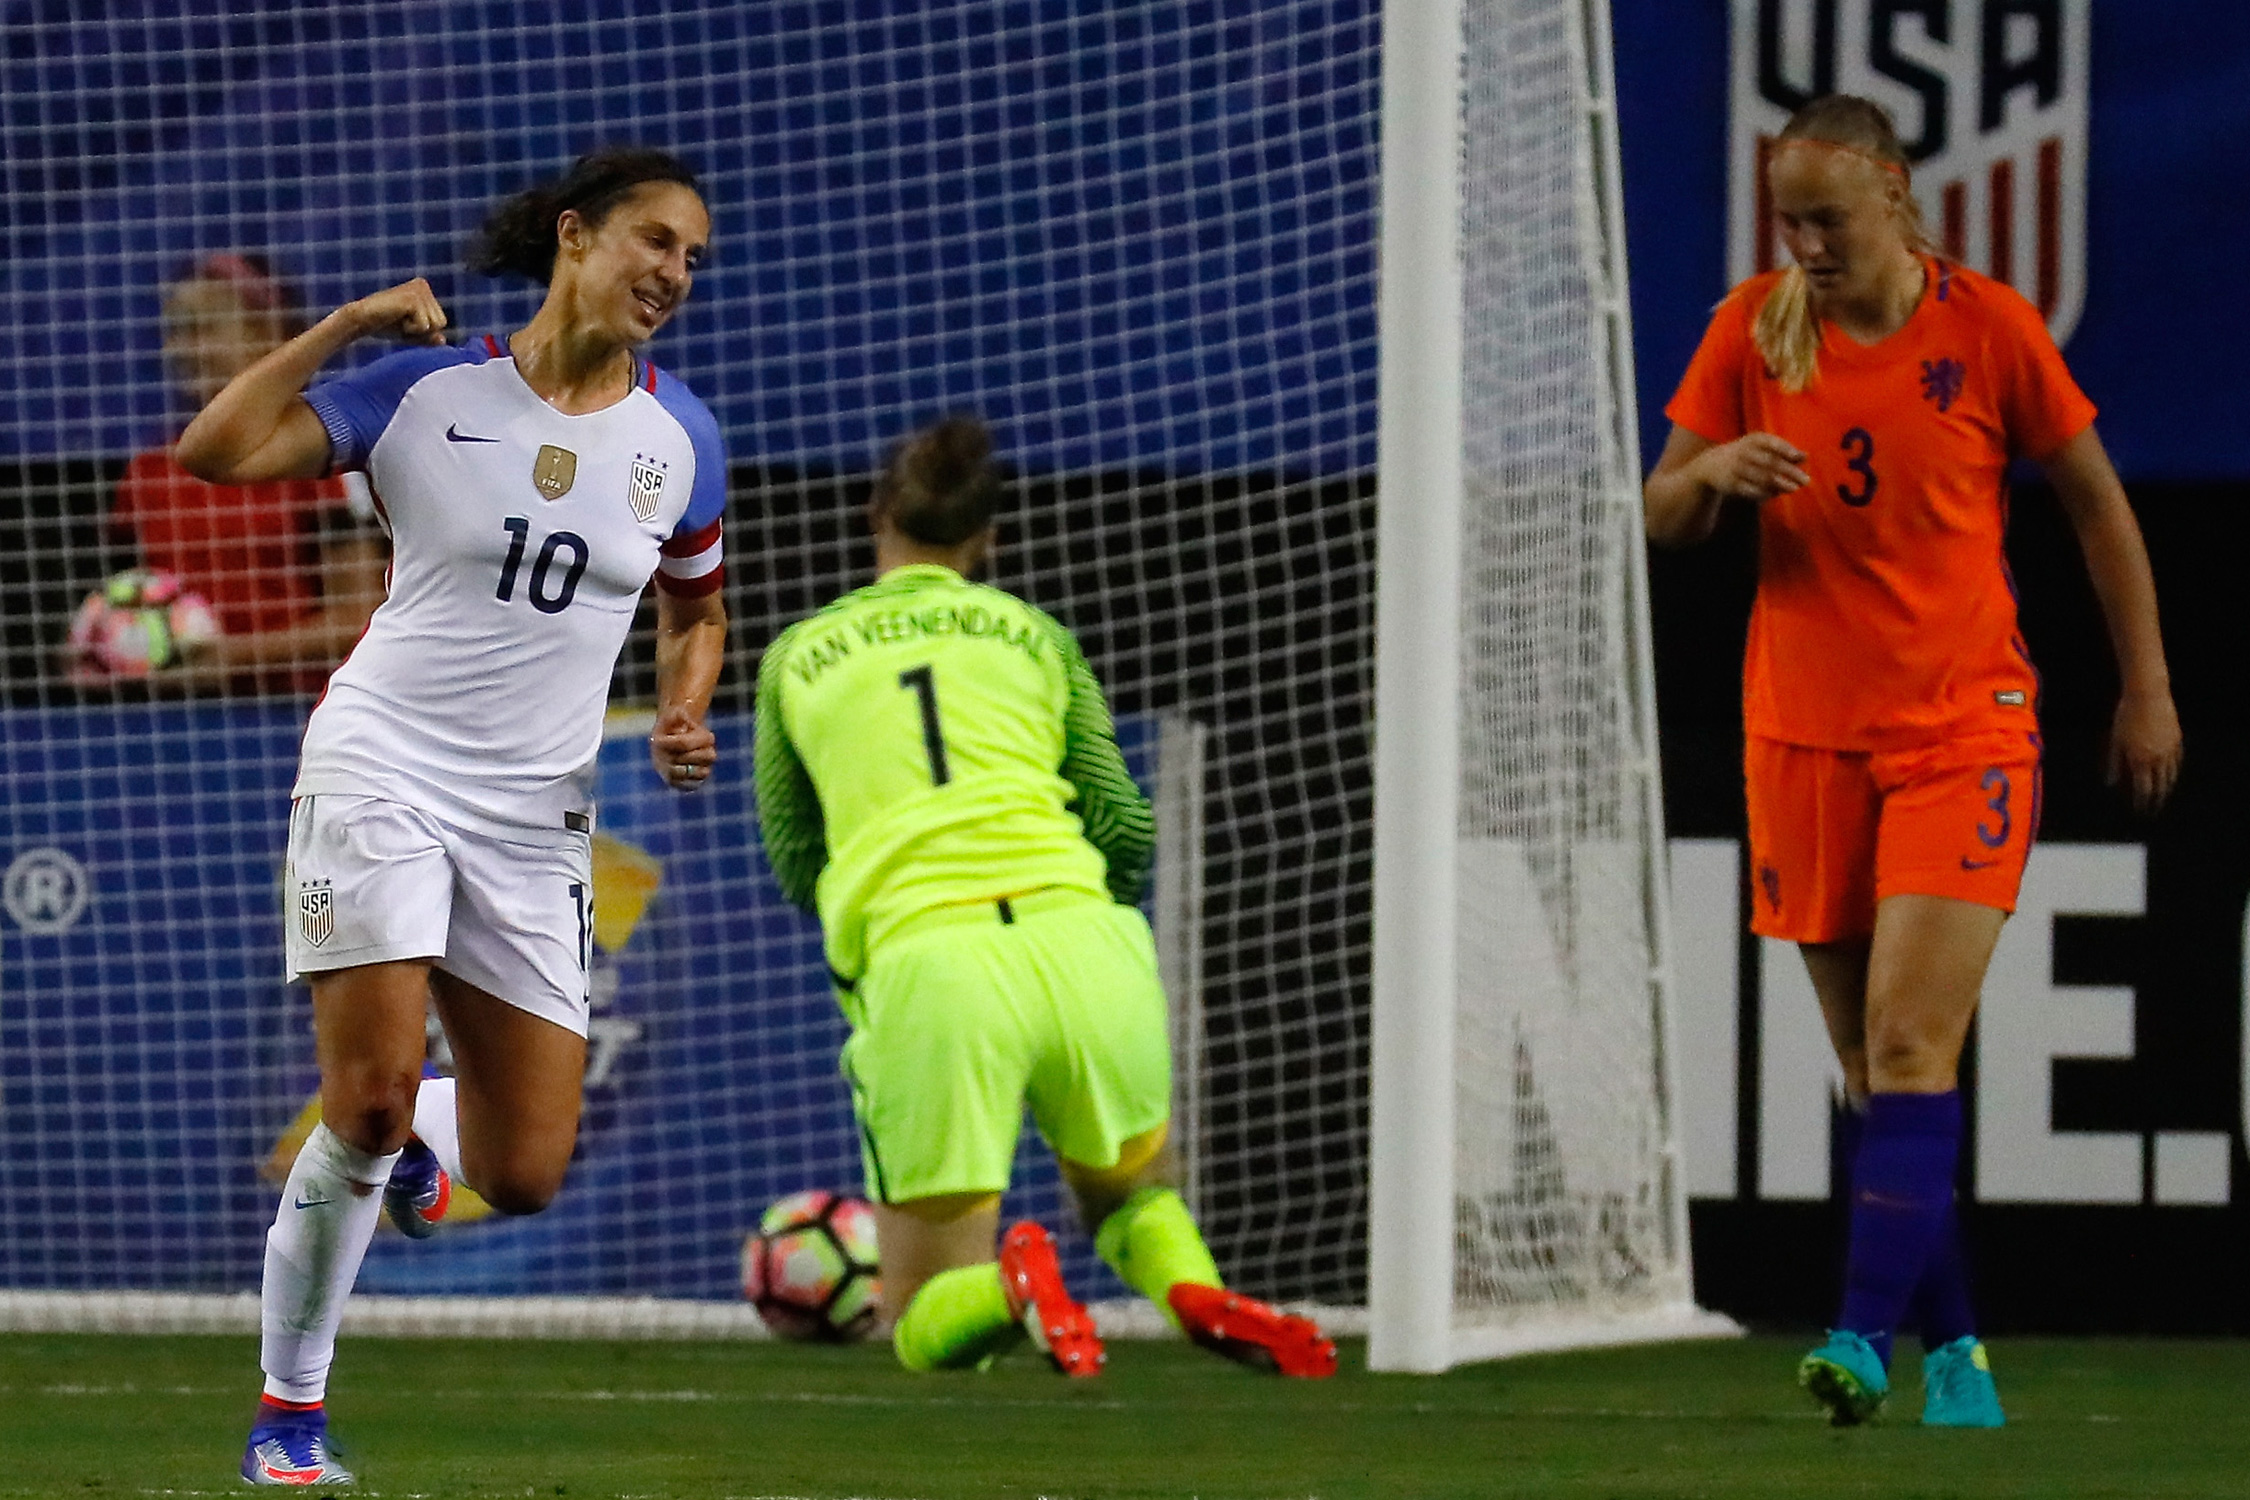 Carli Lloyd celebrates her goal that kicks off the scoring for the USA in a 3-1 win over the Netherlands at the Georgia Dome in Atlanta.